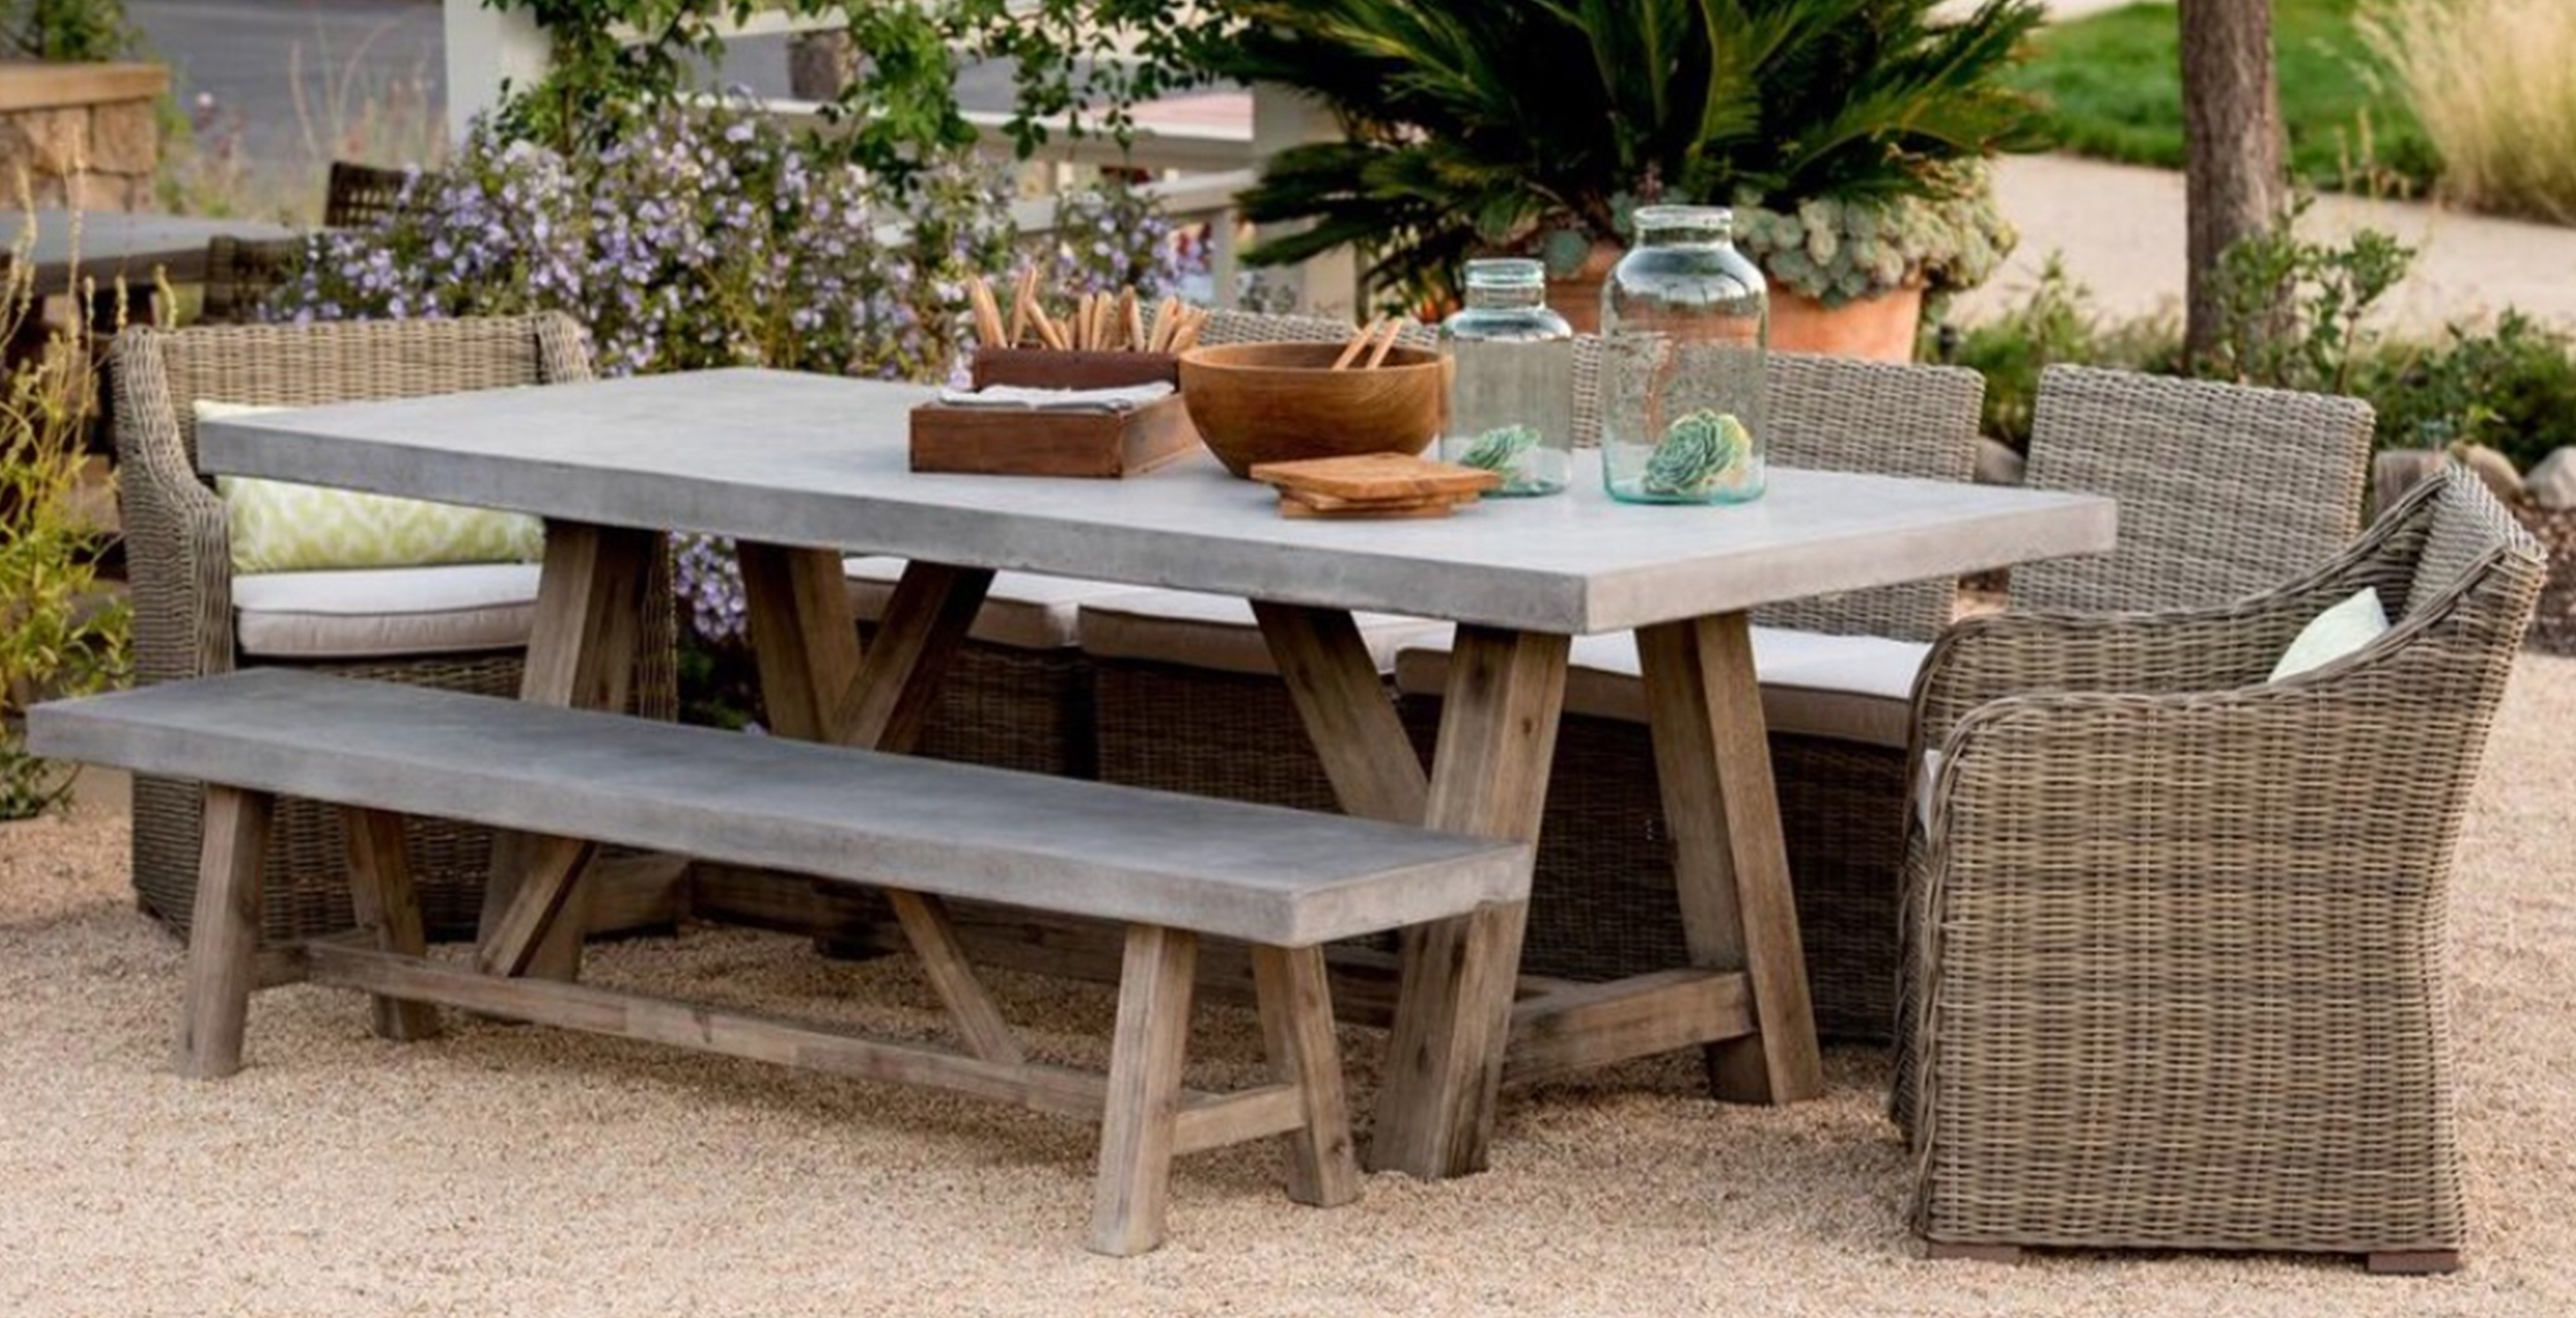 Bordeaux Dining Tables Throughout Most Recently Released Bordeaux Concrete Top Table – Outdoor Furniture (Gallery 12 of 25)